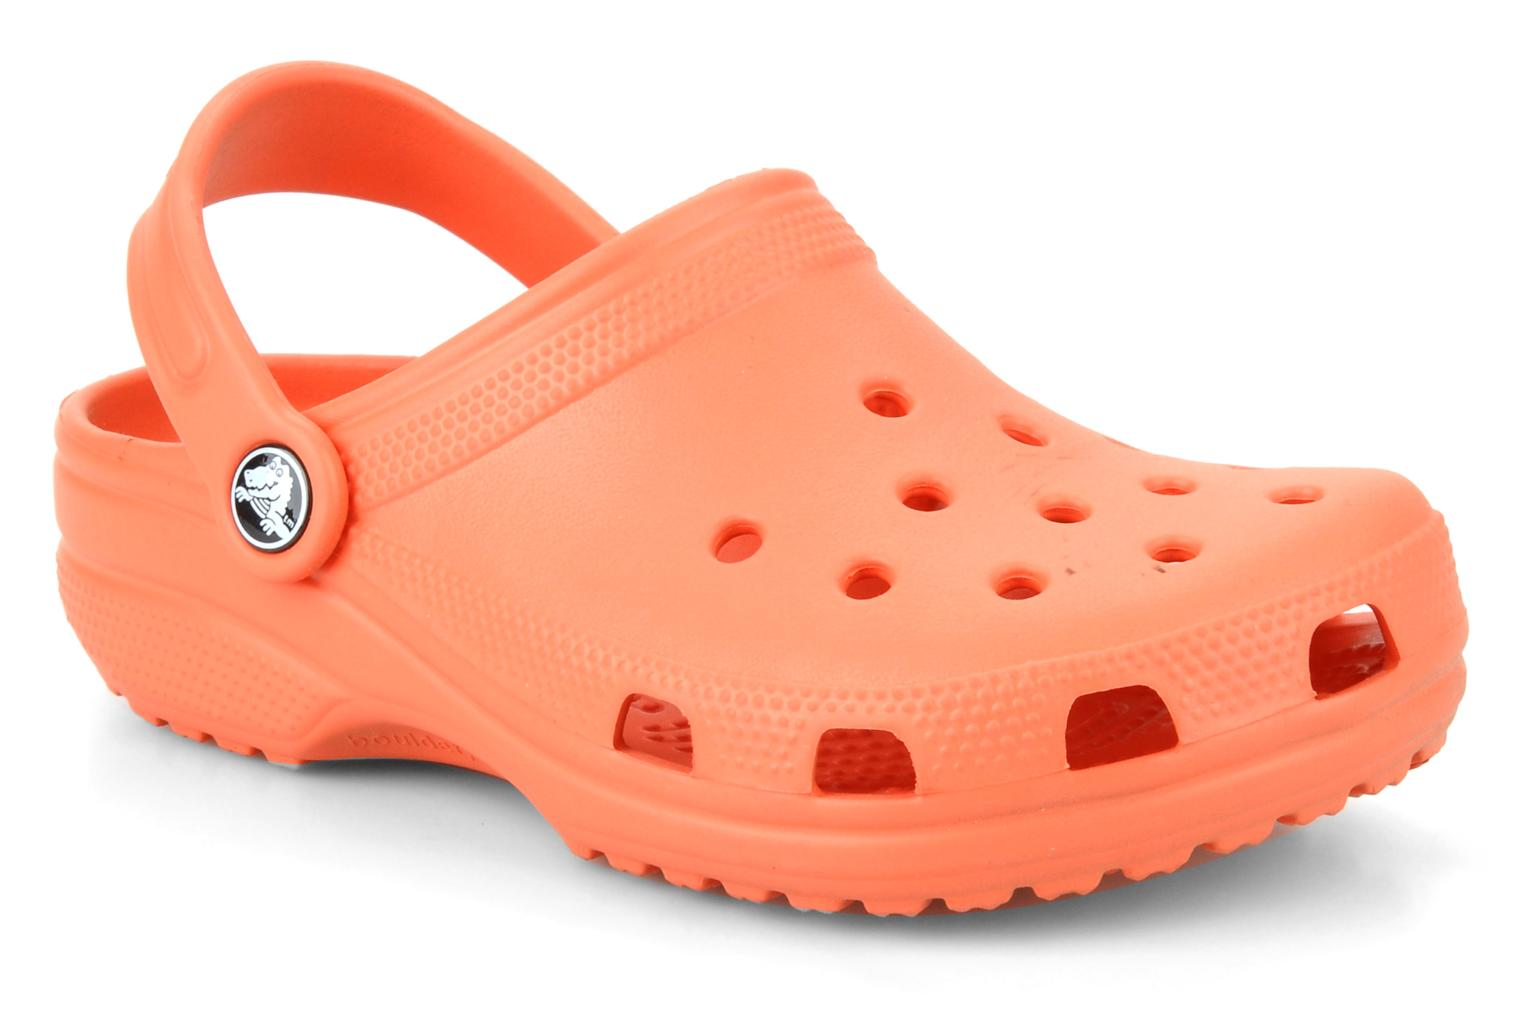 Description. Crocs Kids – Classic Clog (Toddler/Little Kid) (Slate Grey) Kids Shoes. Crocs comfort Level 1. ; Their feet are cool and comfortable in the Classic Clog from Crocs Kids.